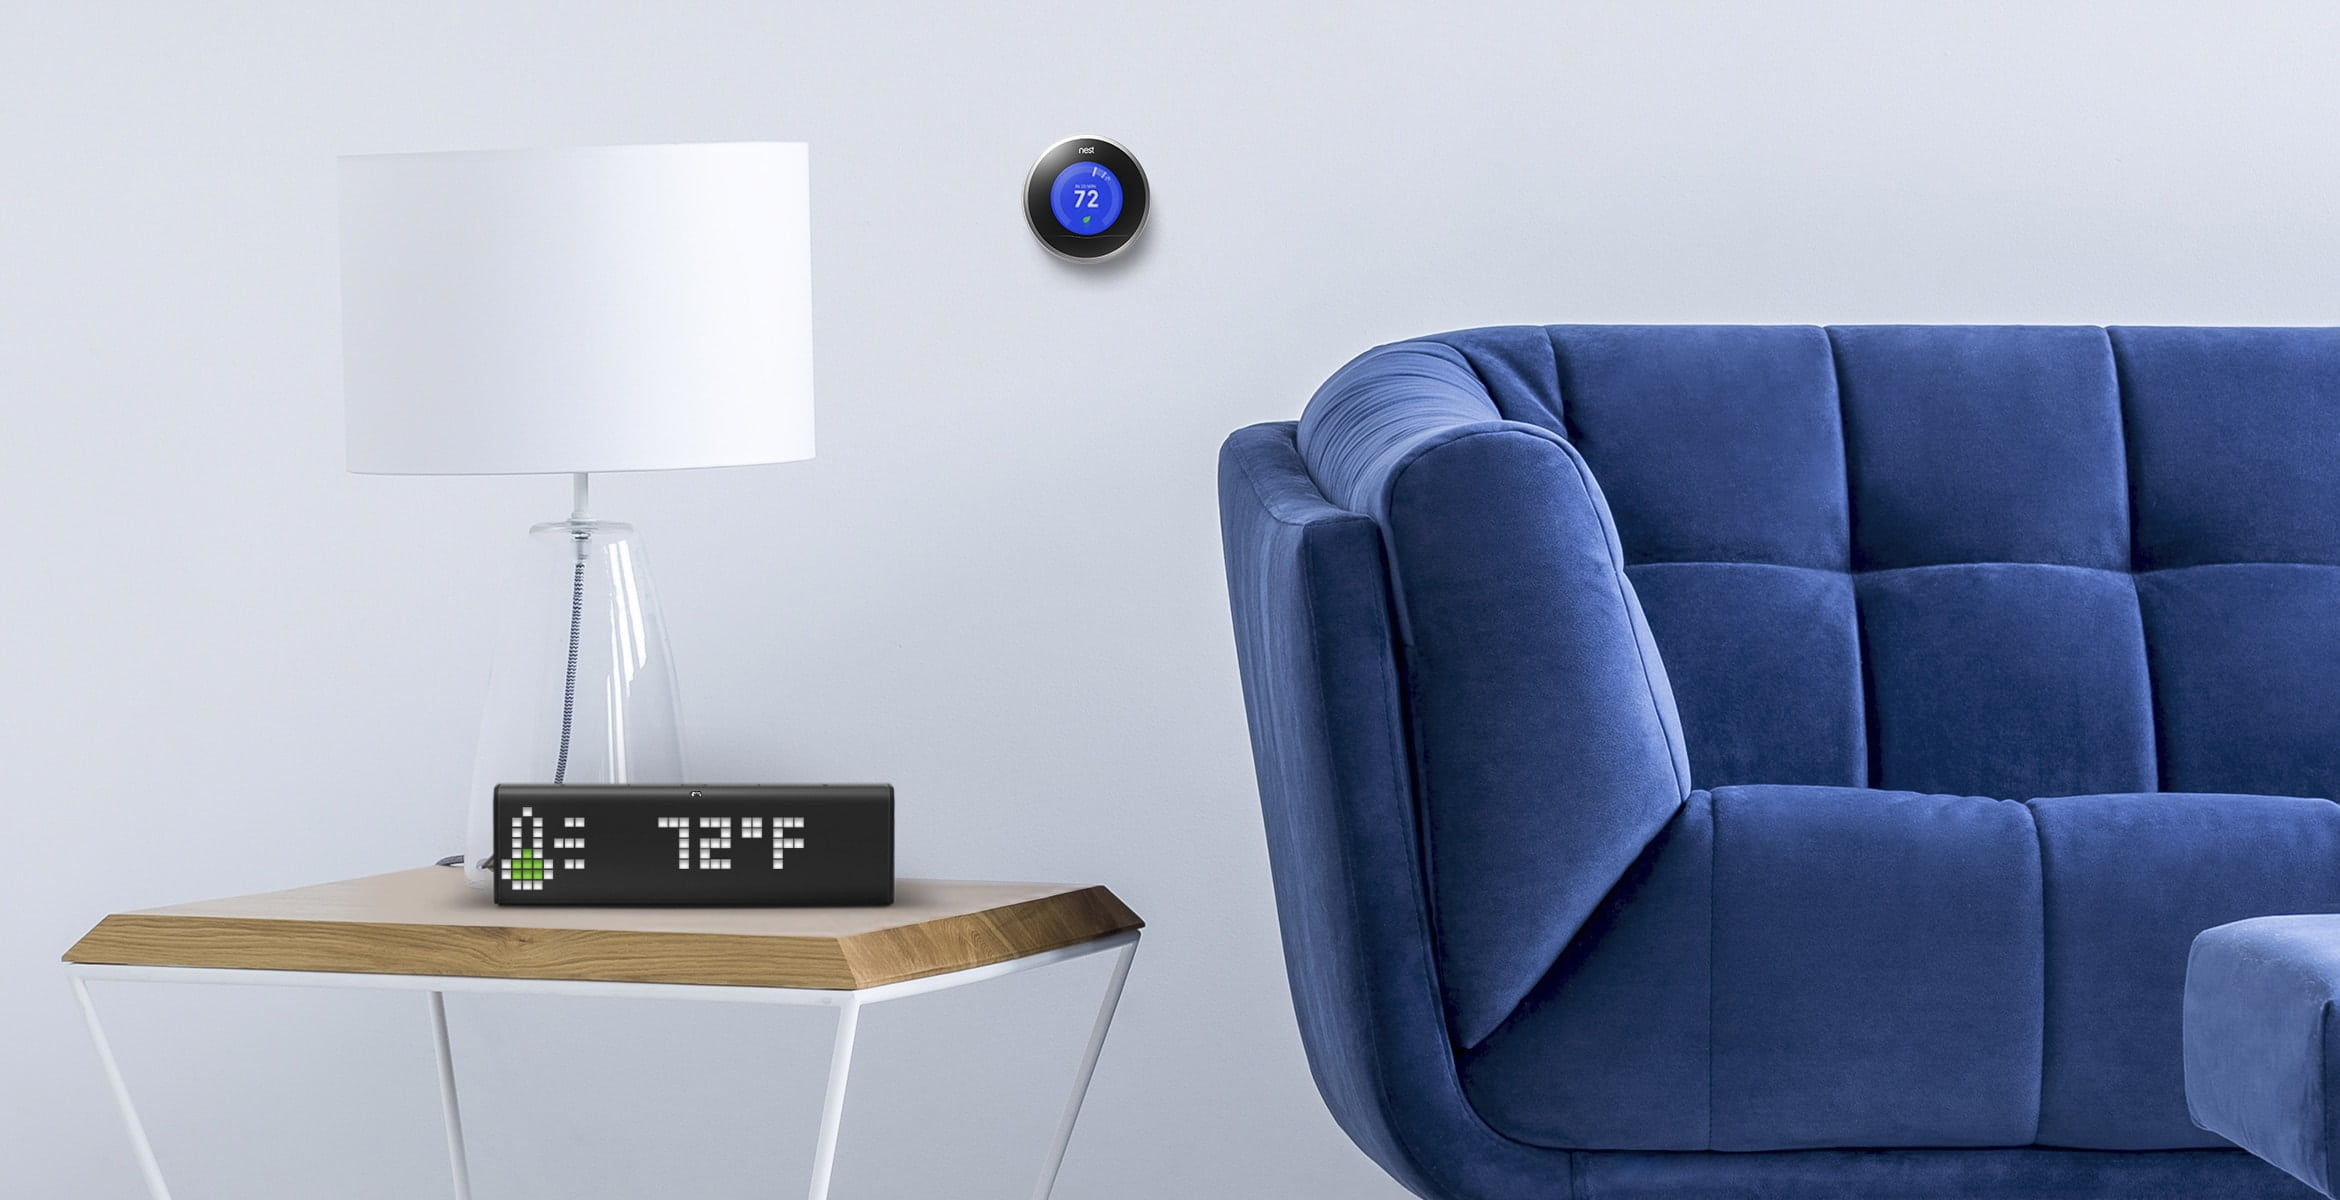 LaMetric Time smart clock, which is located in the living room, shows the indoor temperature from Nest Thermostat